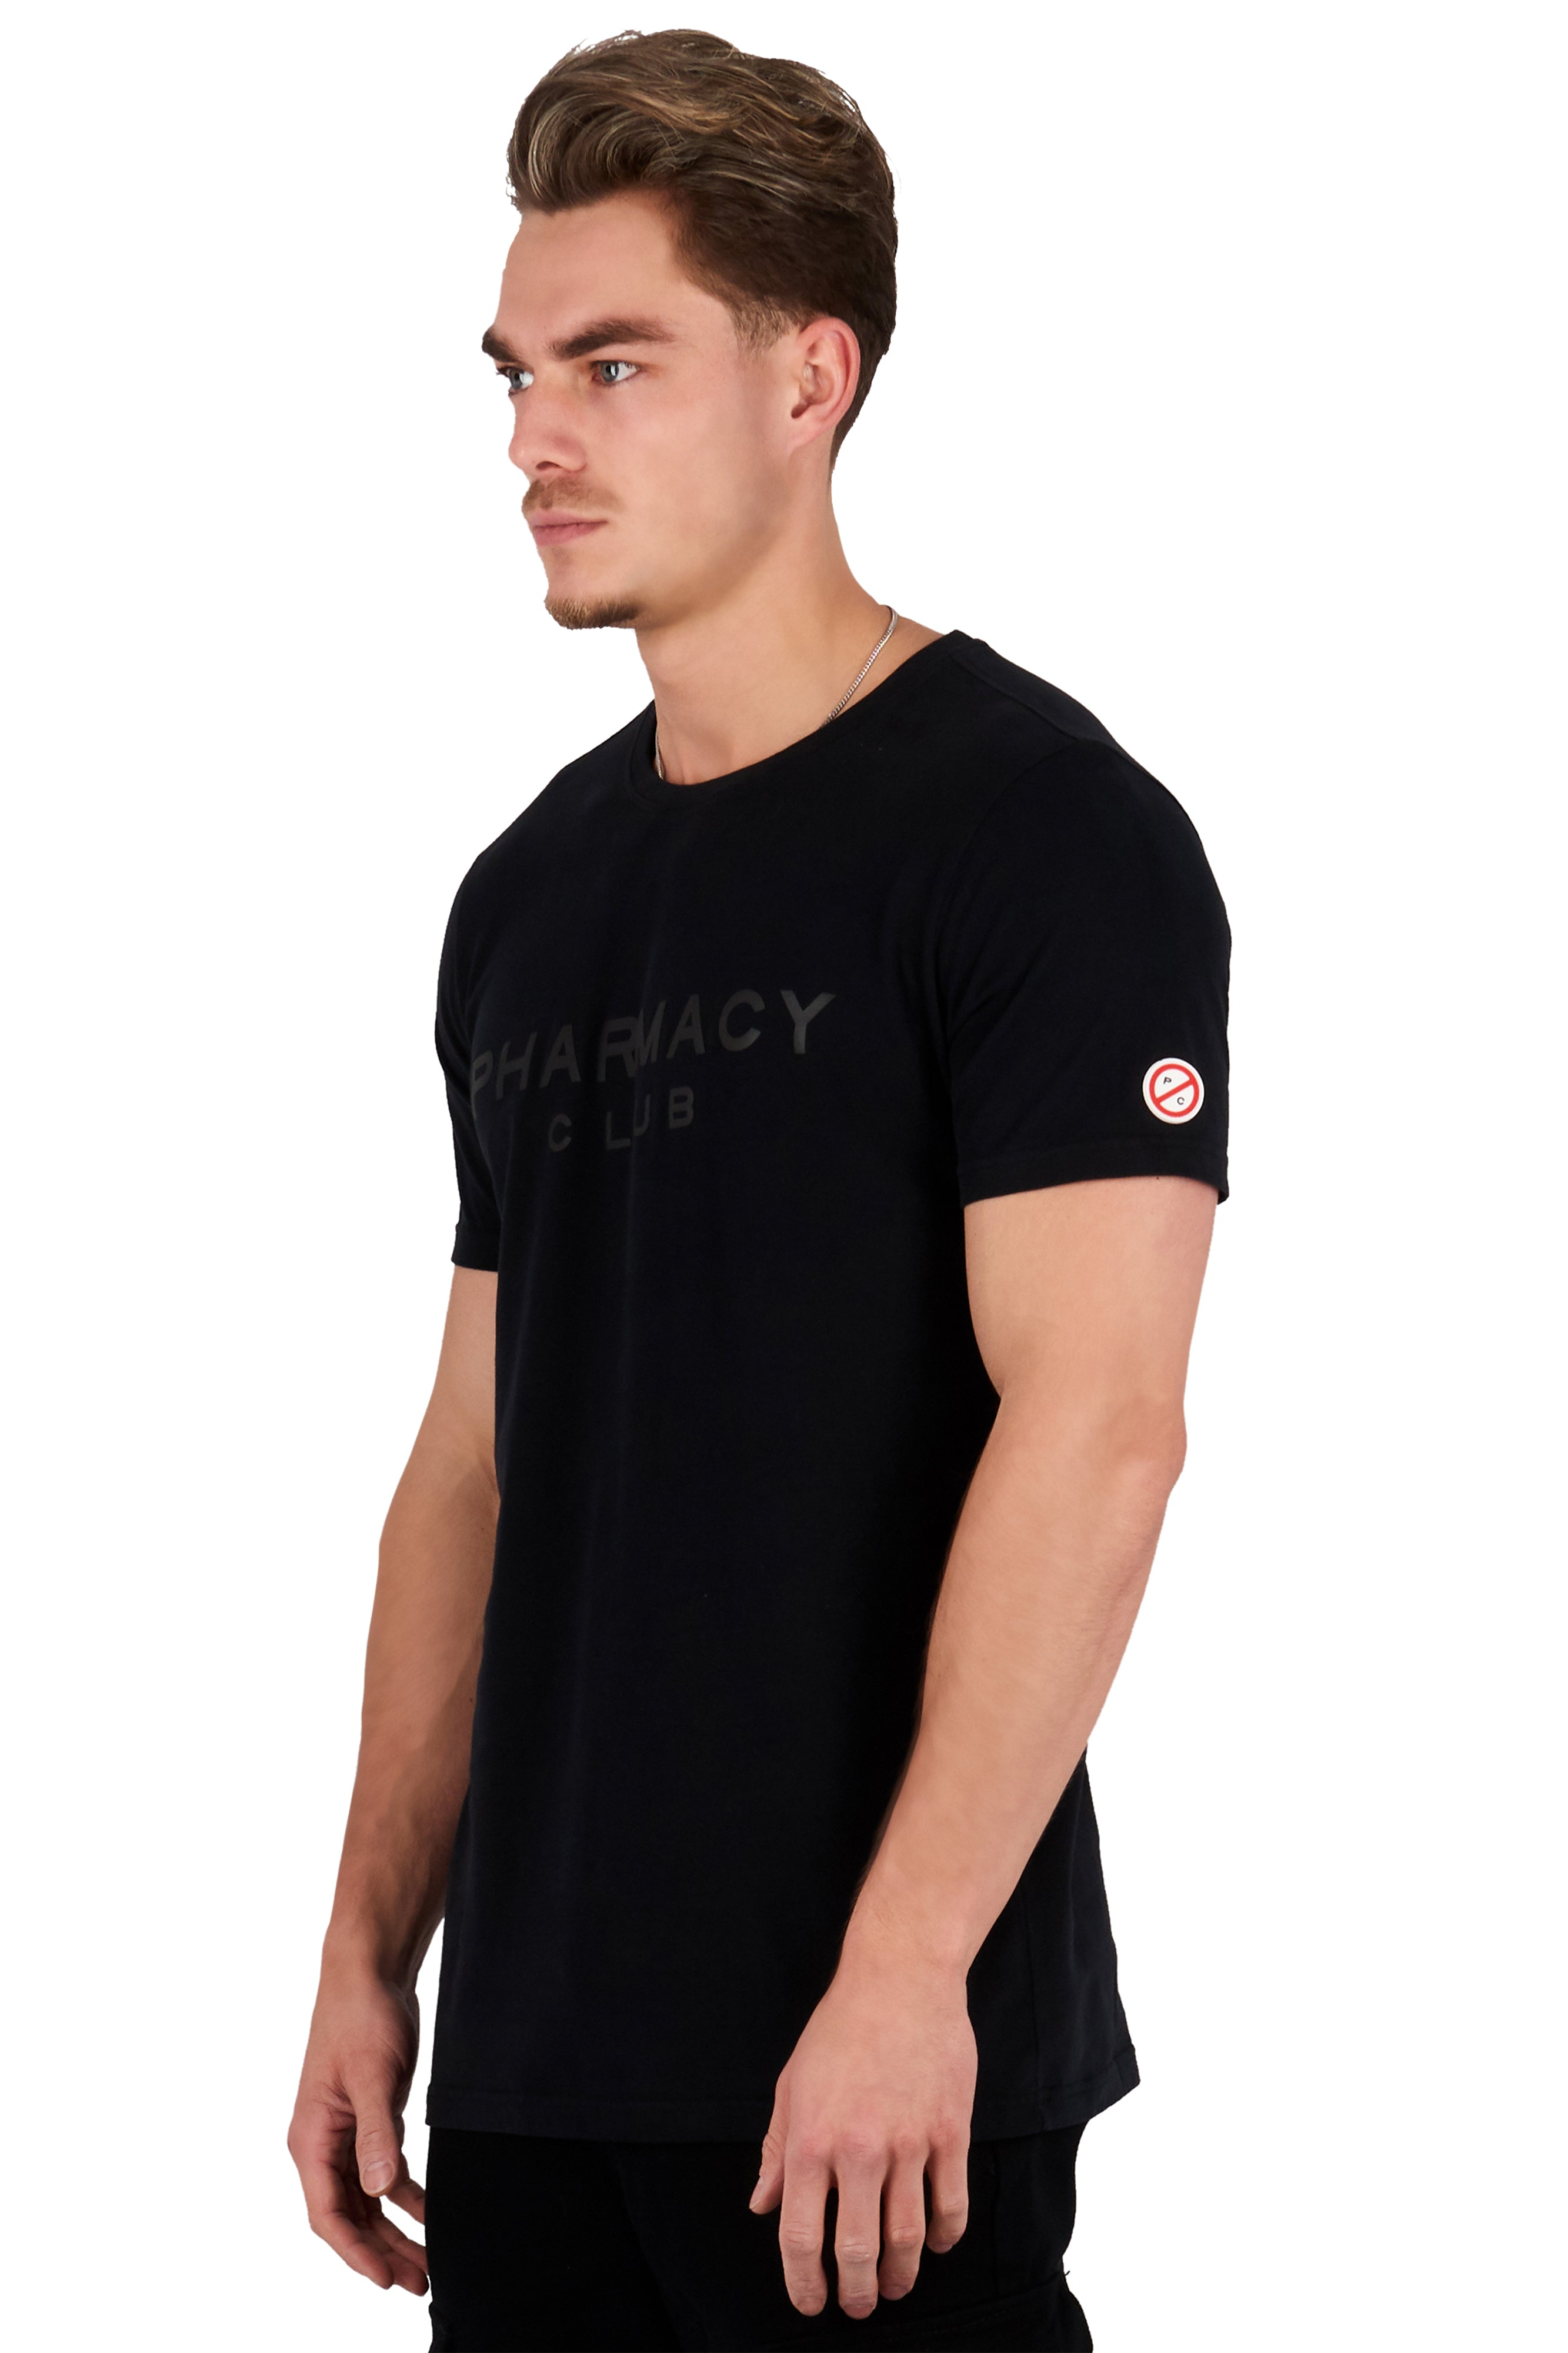 <b>PC105</b><br>T-shirt<br>3D Rubber logo<br>